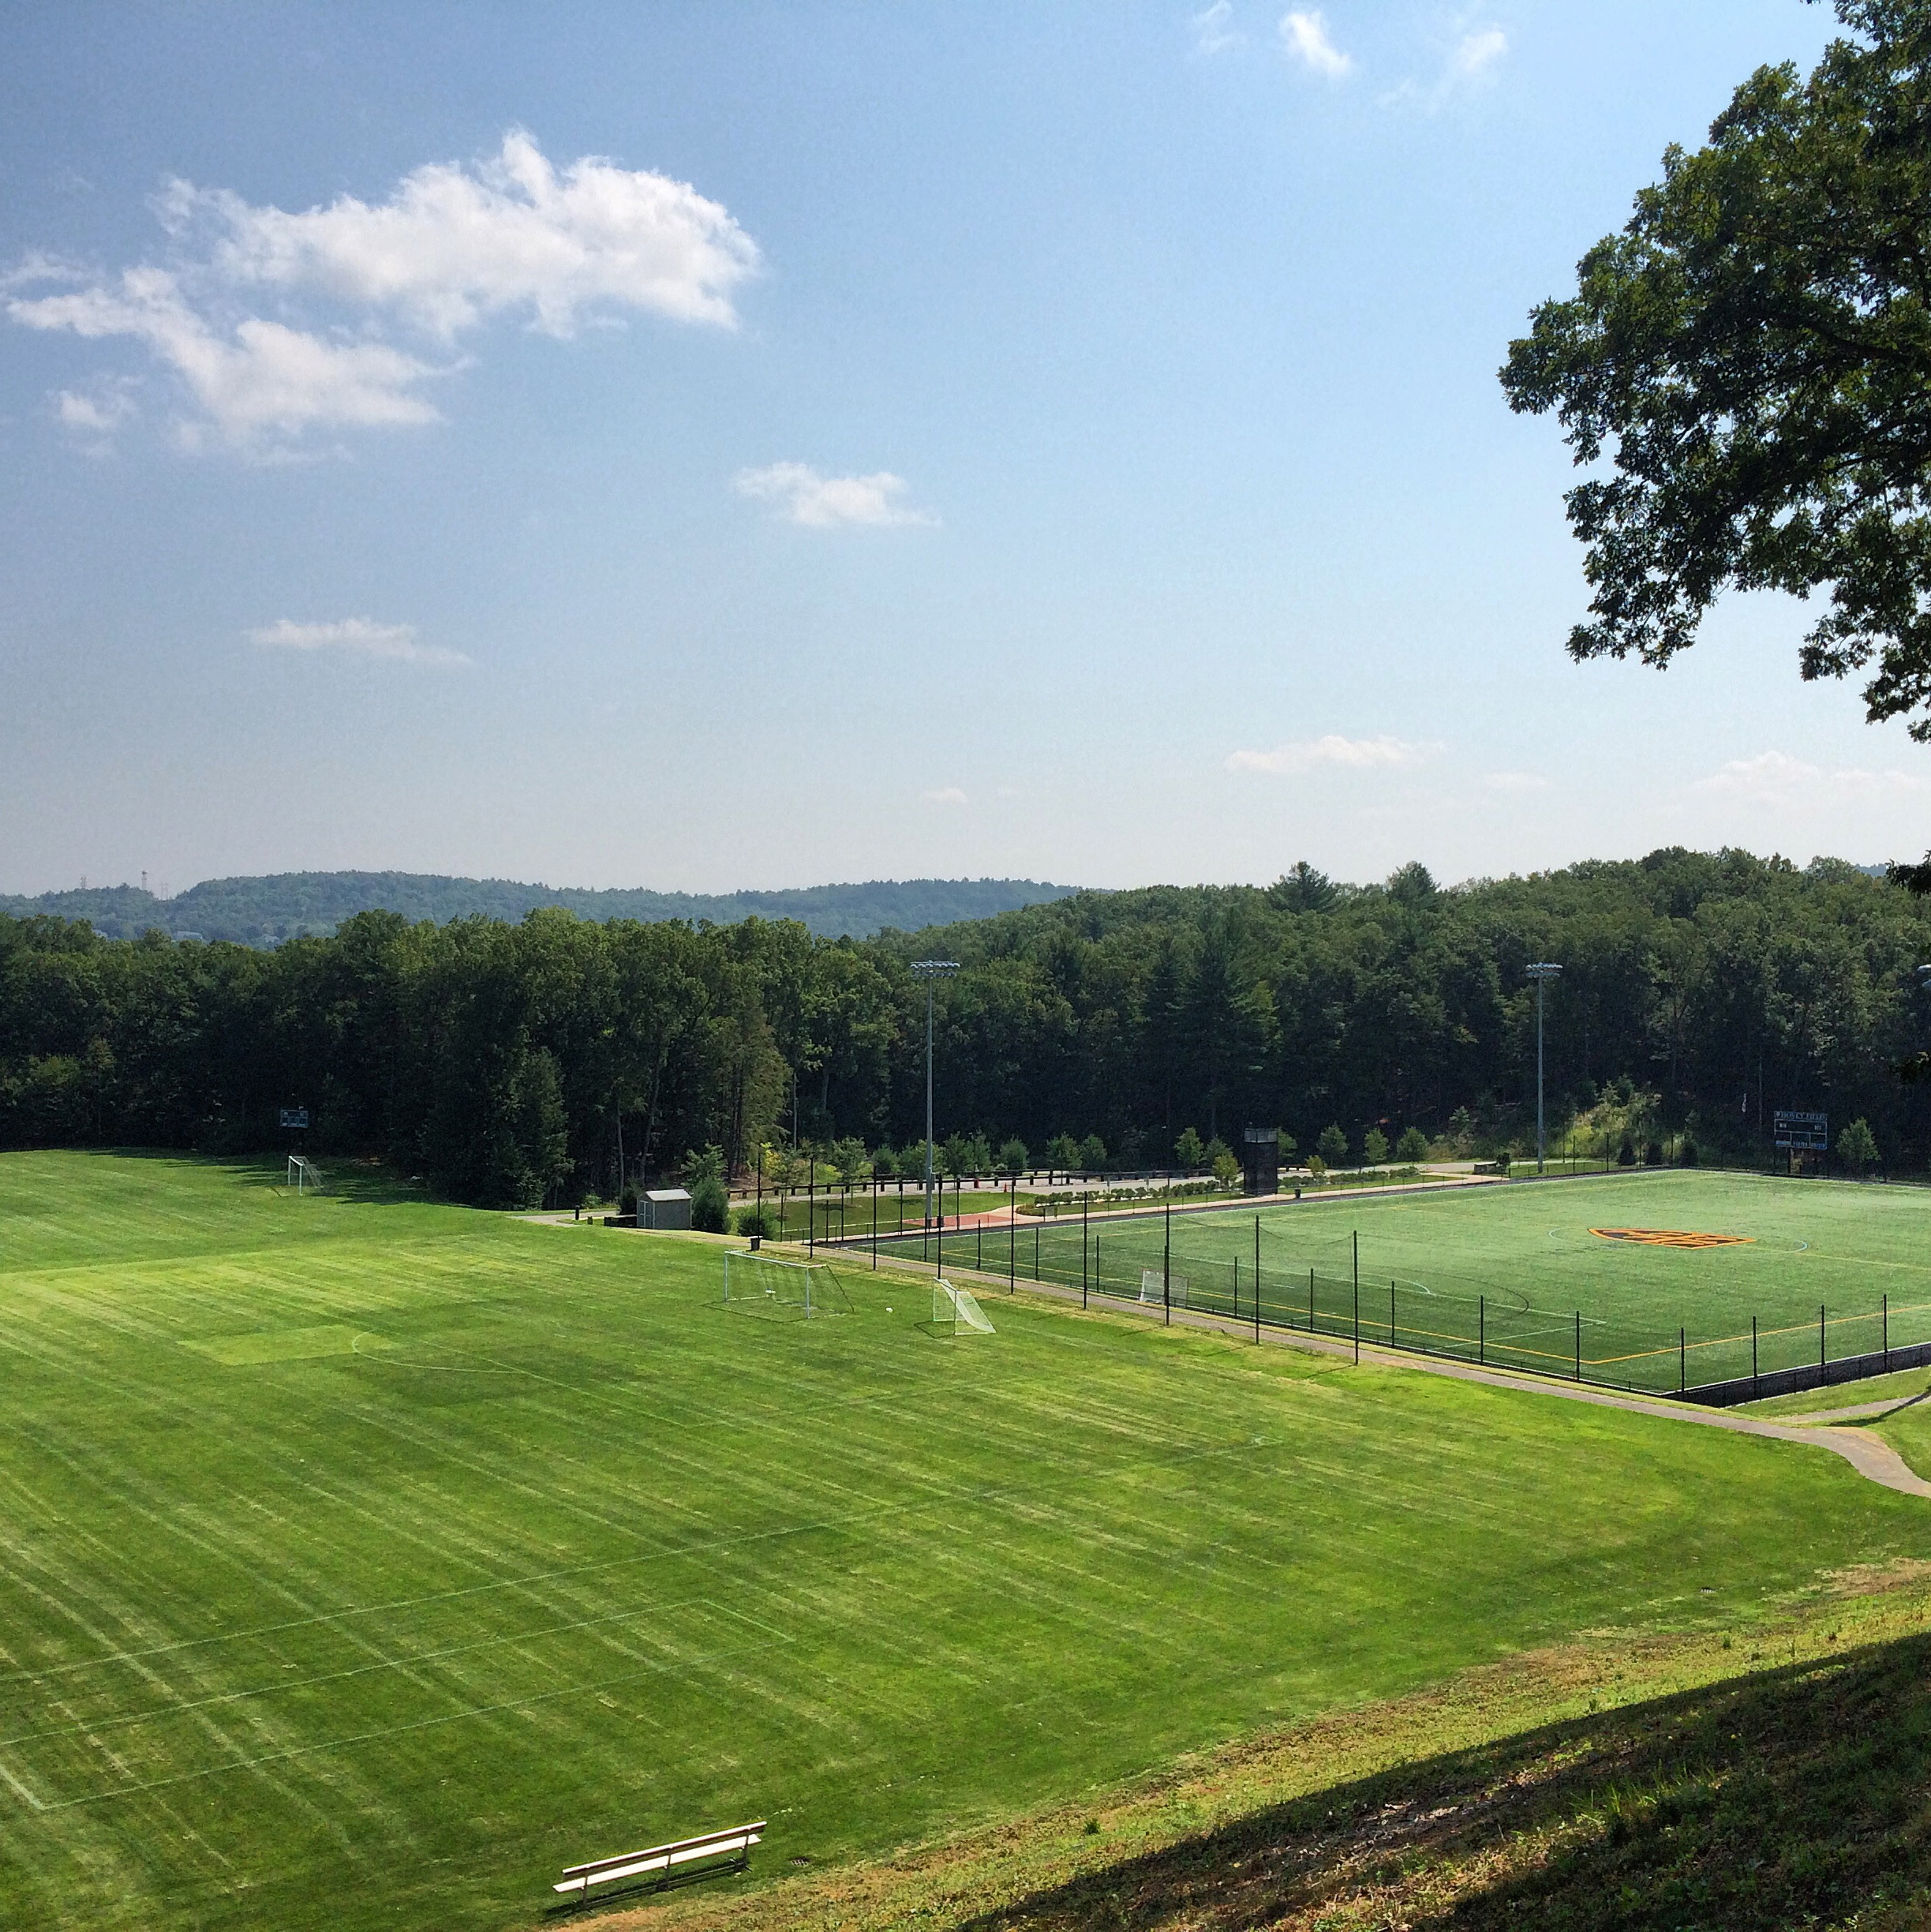 Outdoor Training Facility Features state-of-the-art turf field and professional grass fields